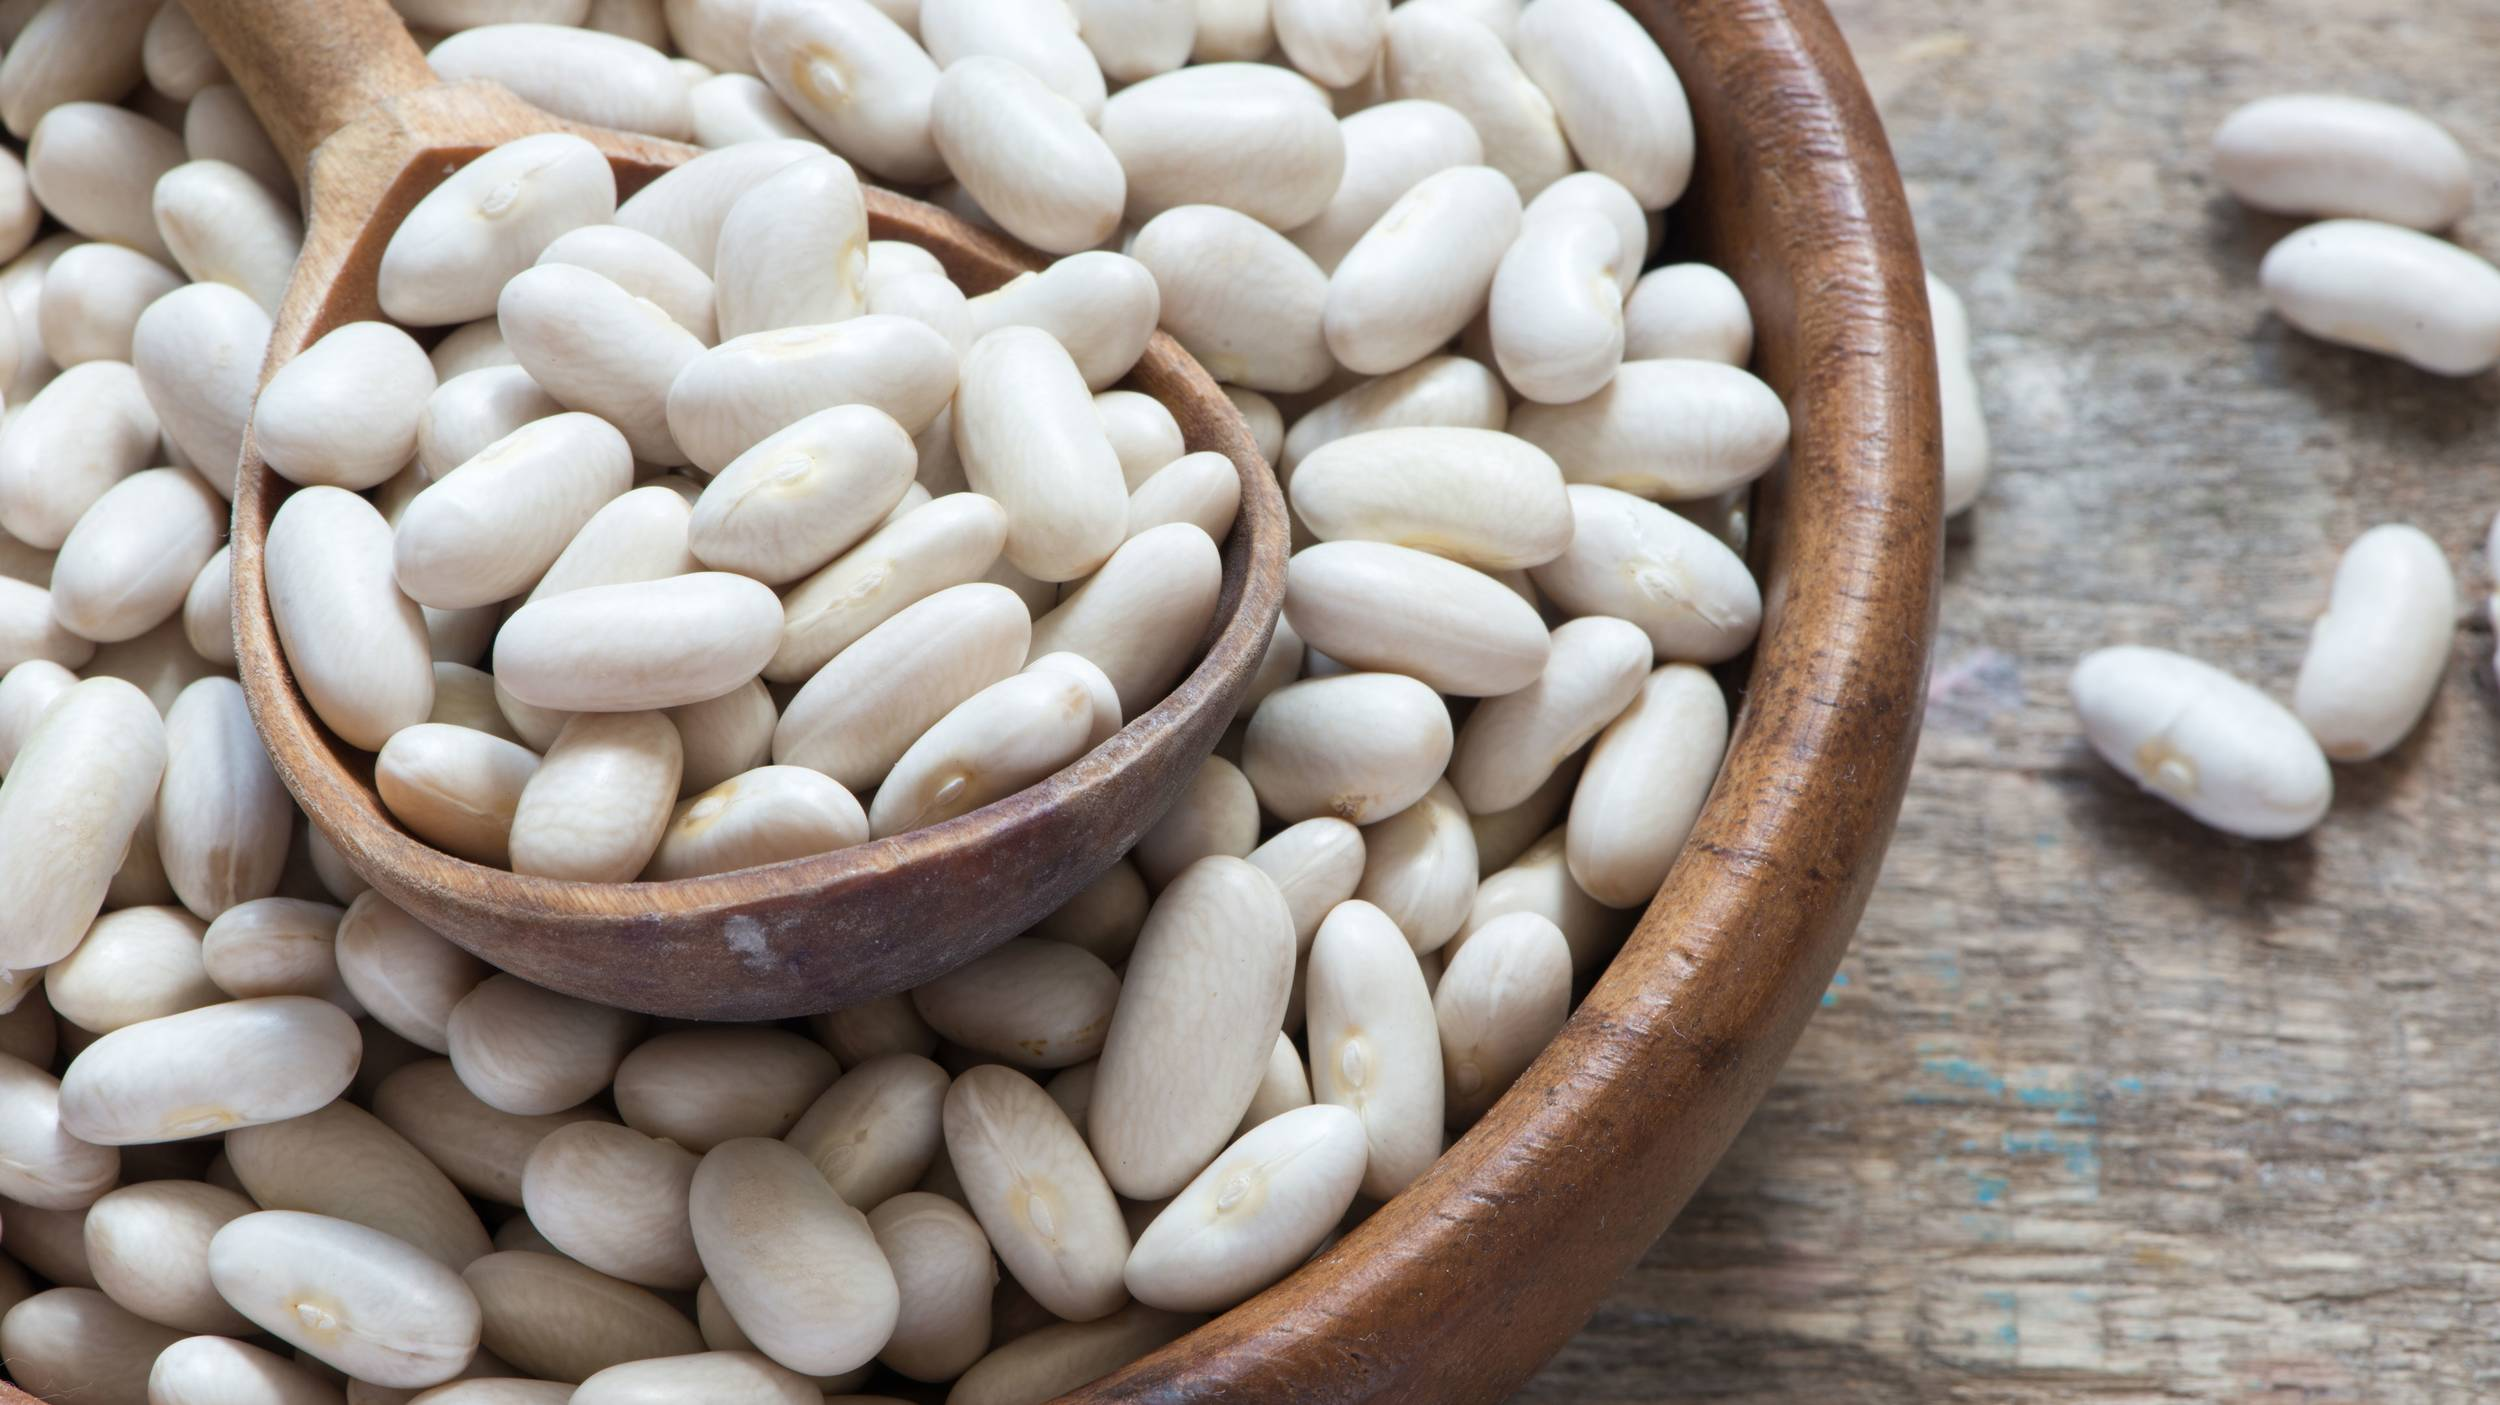 Known for their soft texture and ability to carry flavor, cannellini beans are a great addition to stews, chillis, soups, casseroles and curry dishes.